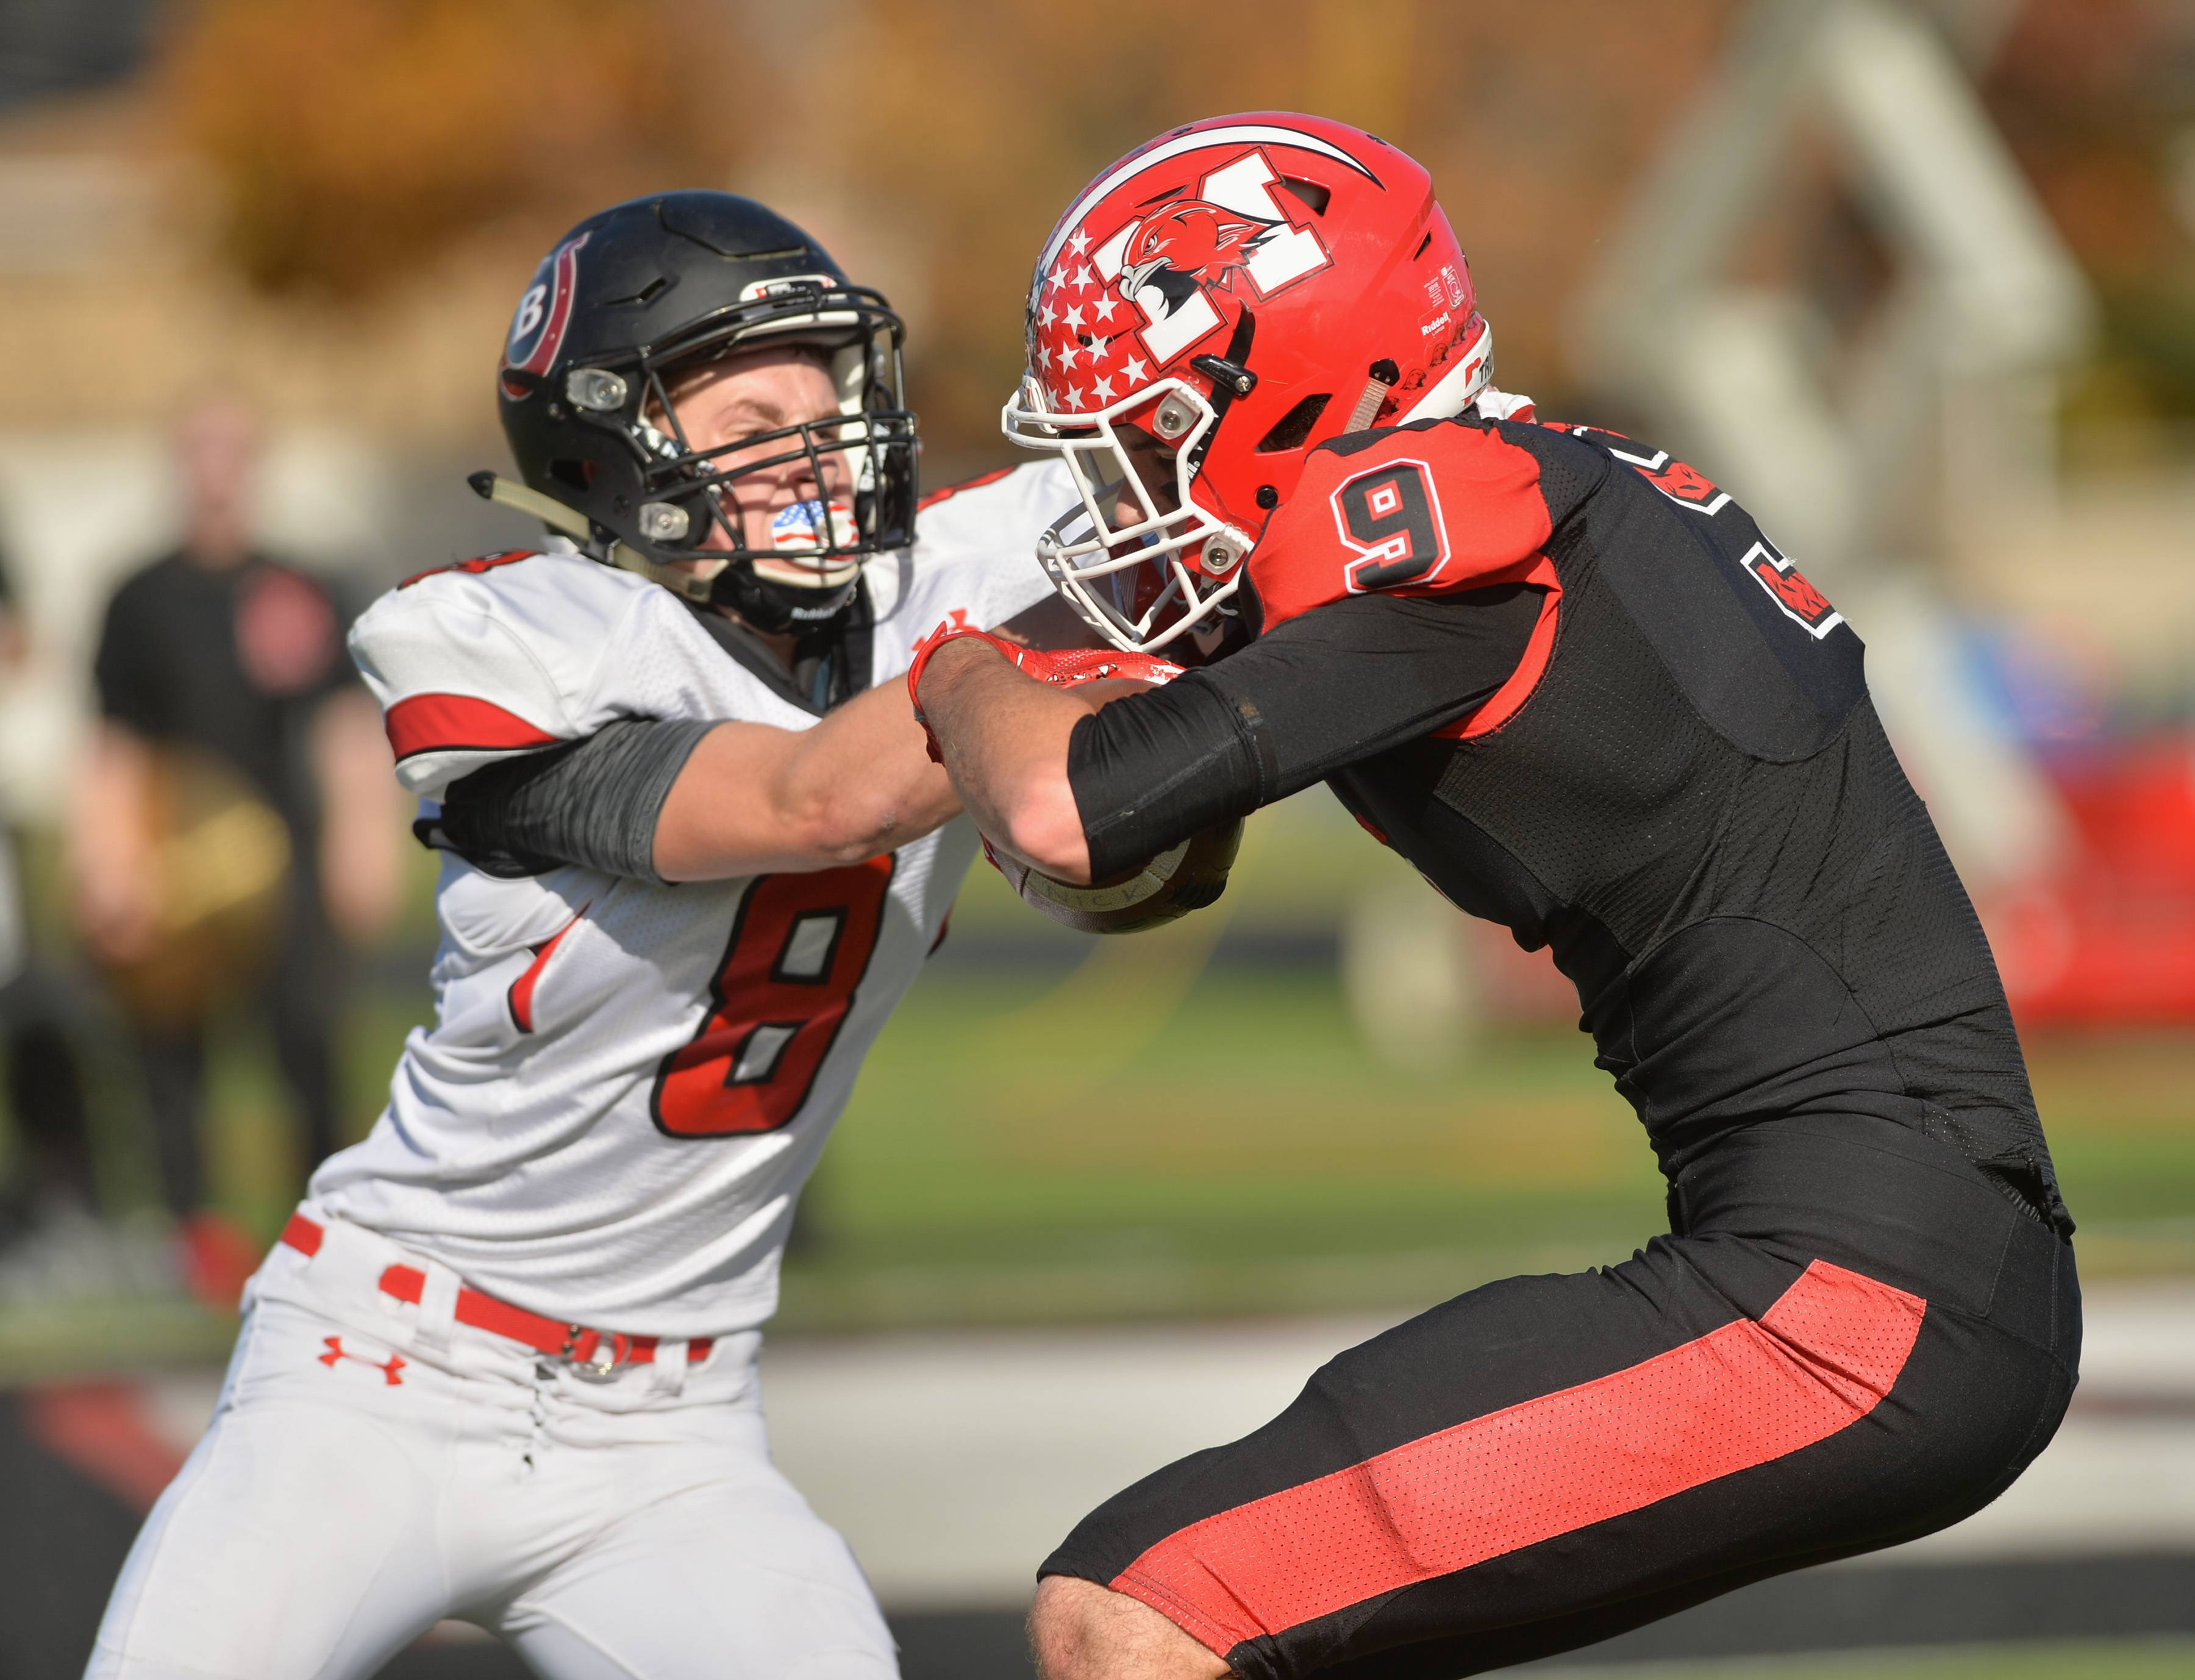 Barrington defensive back Grant Leichter tackles Maine South's Luke Hinkamp after a reception in their second-round playoff game Saturday in Park Ridge.